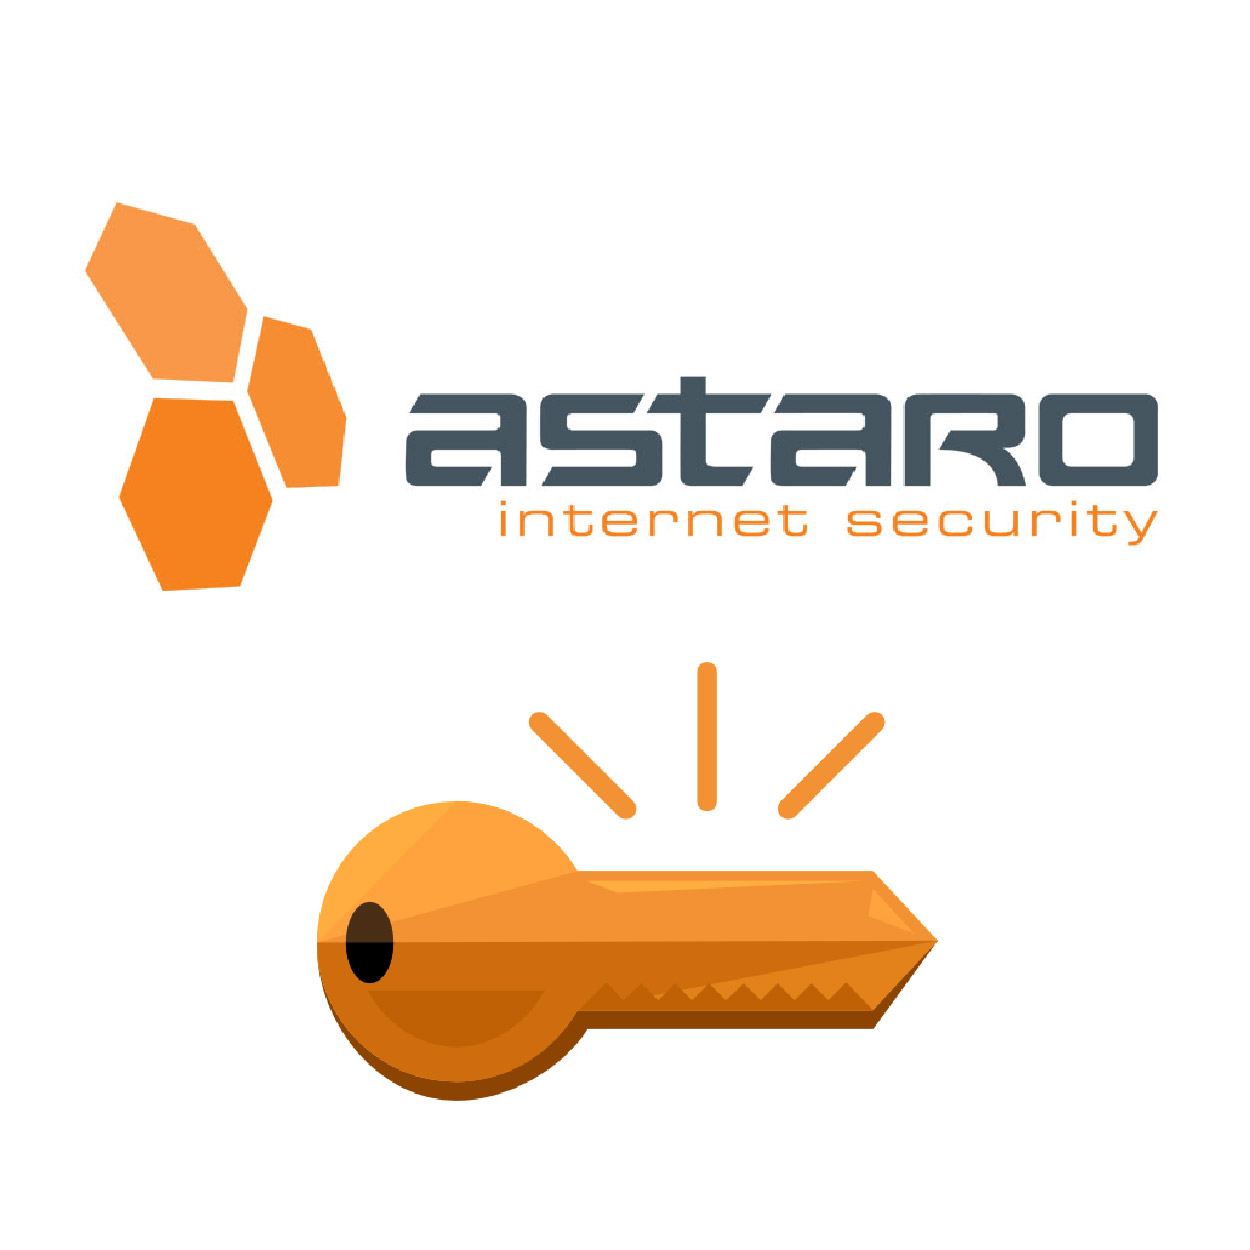 Astaro - ASG 425 Network Security Subscription - Upgrading Key ,Firewall